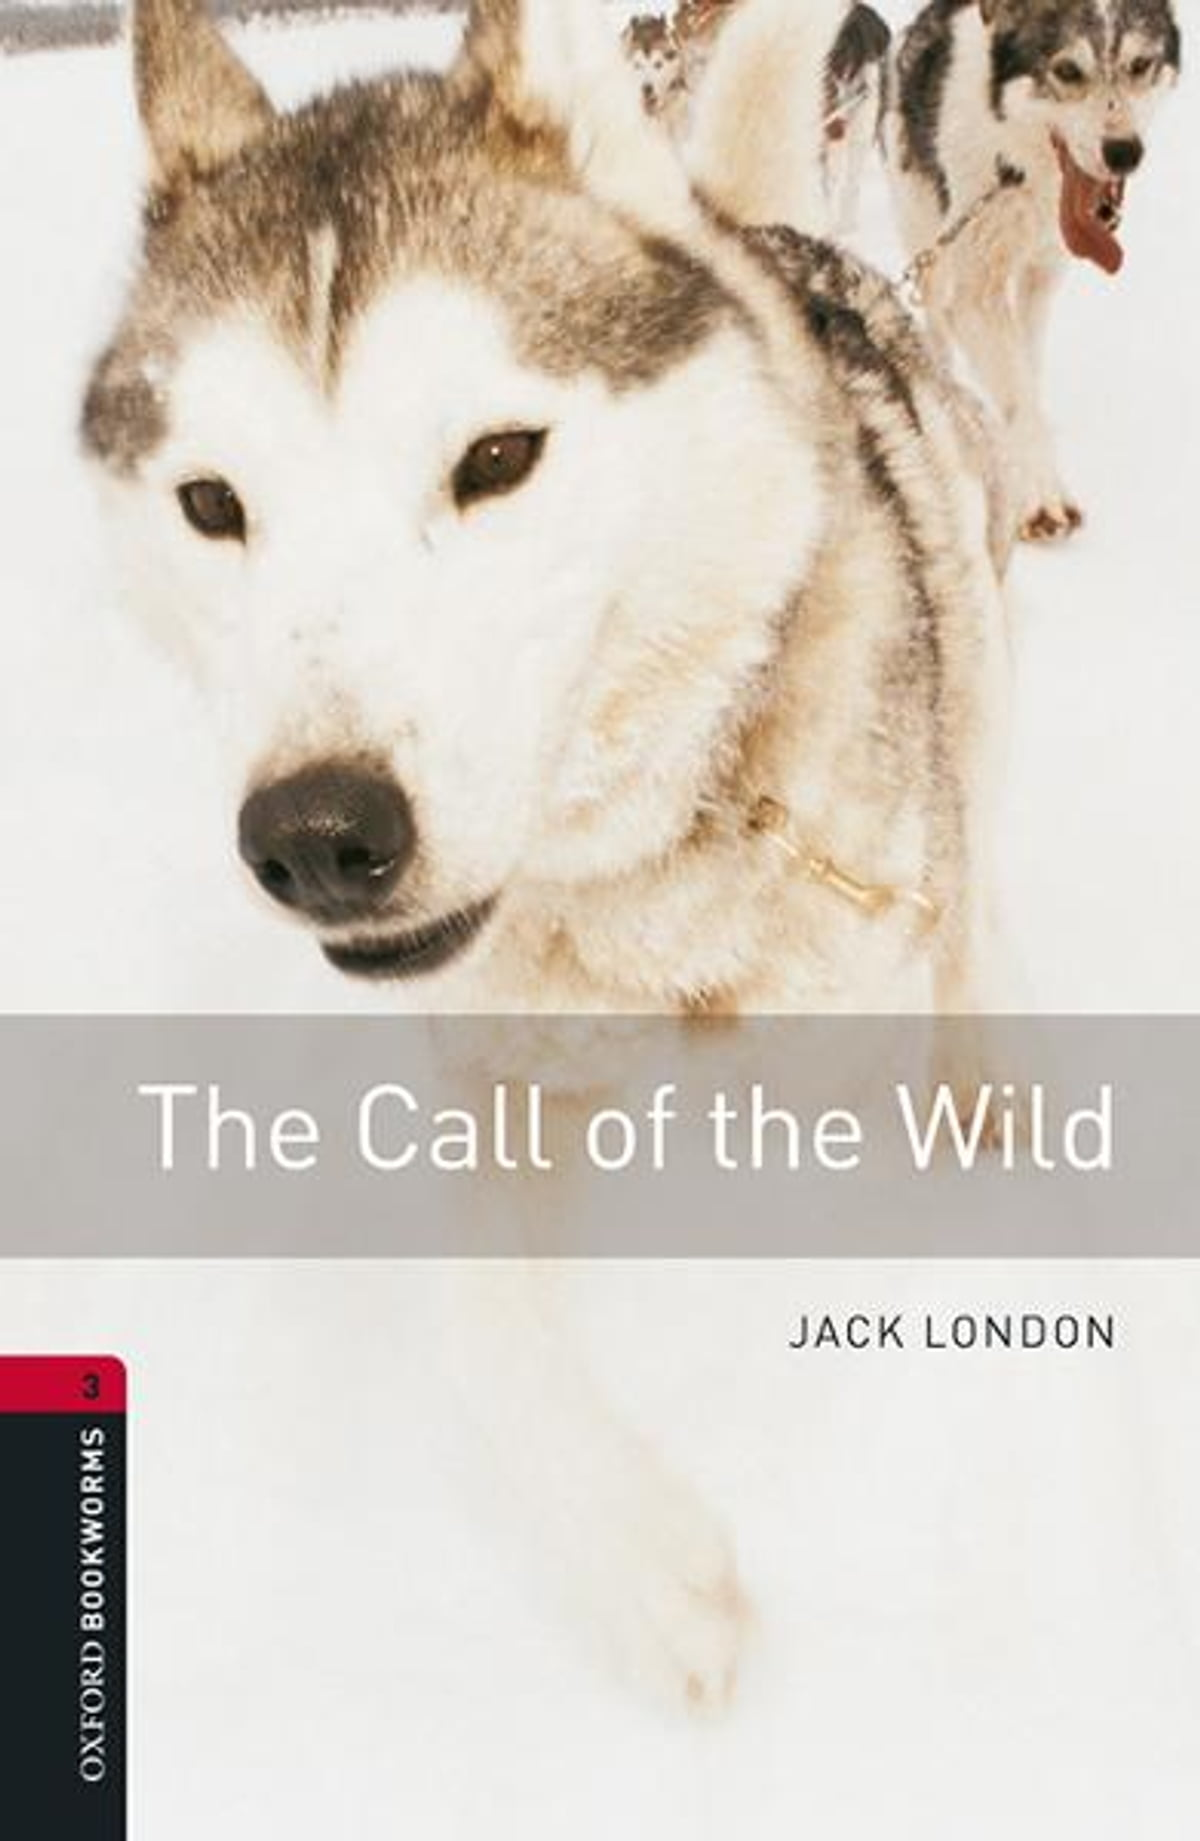 an analysis of the book the call of the wild The call of the wild is a short adventure novel by jack london published in 1903 and set in yukon, canada, during the 1890s klondike gold rush, when strong sled dogs were in high demand the central character of the novel is a dog named buck.